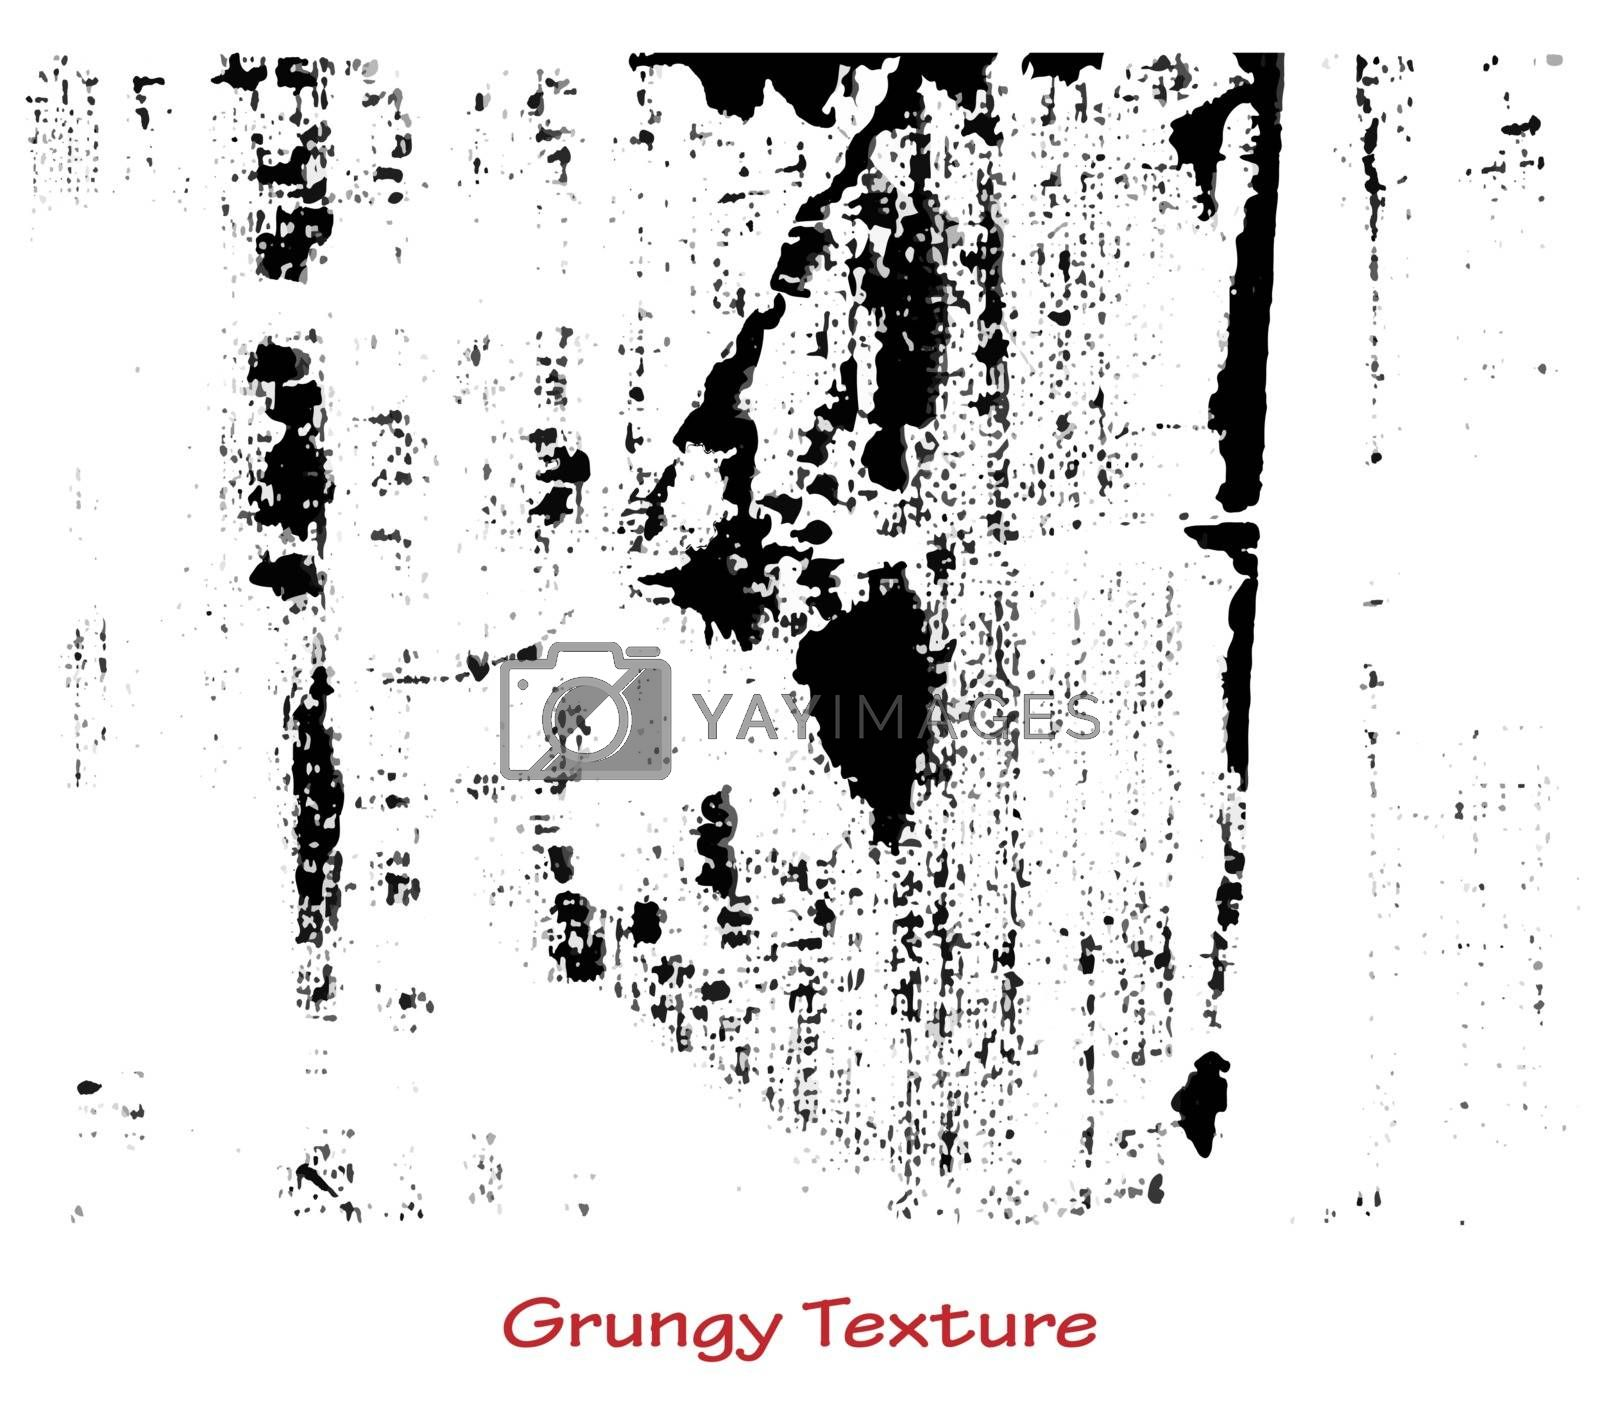 Grungy hand made texture over white background. Elements for your work and design. Eps10